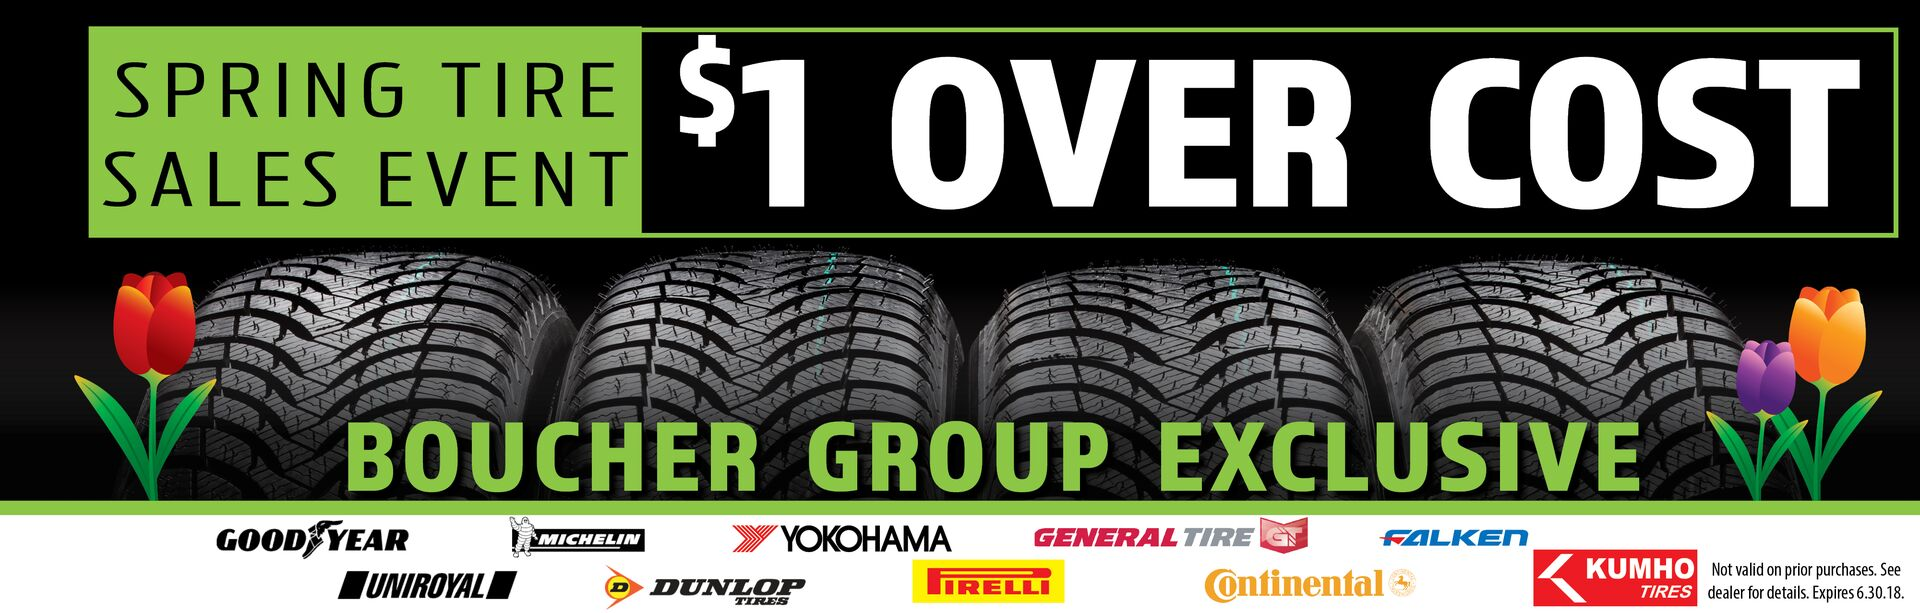 Spring Tire Sales Event